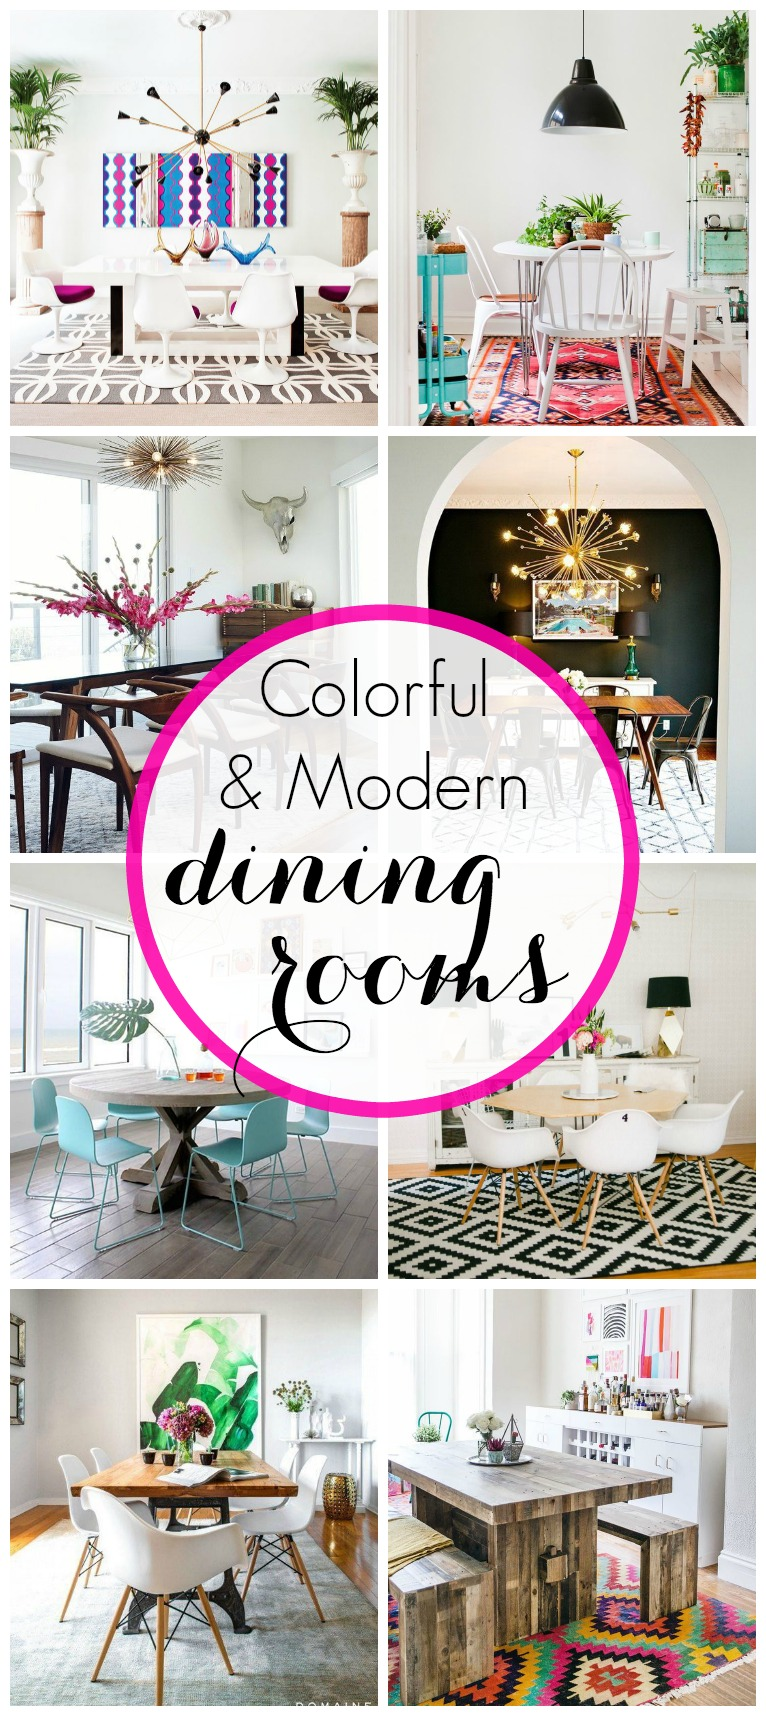 Dining Room Ideas - www.classyclutter.net